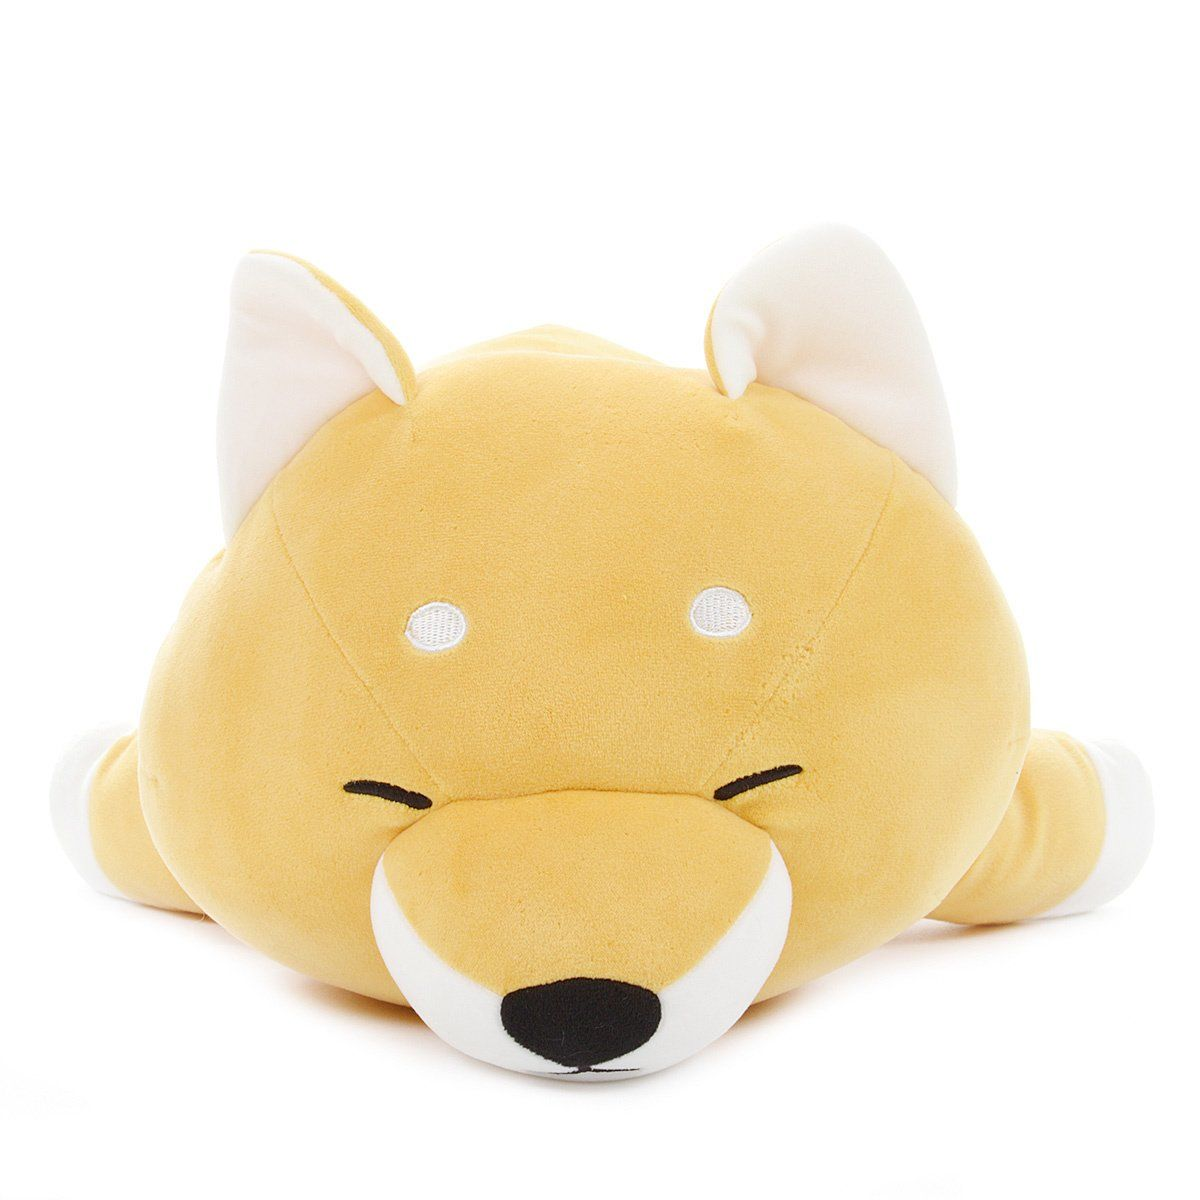 Lazy Cat Amuse Mochi-Fuwa Nemukko Big Stuffed Plush Toy